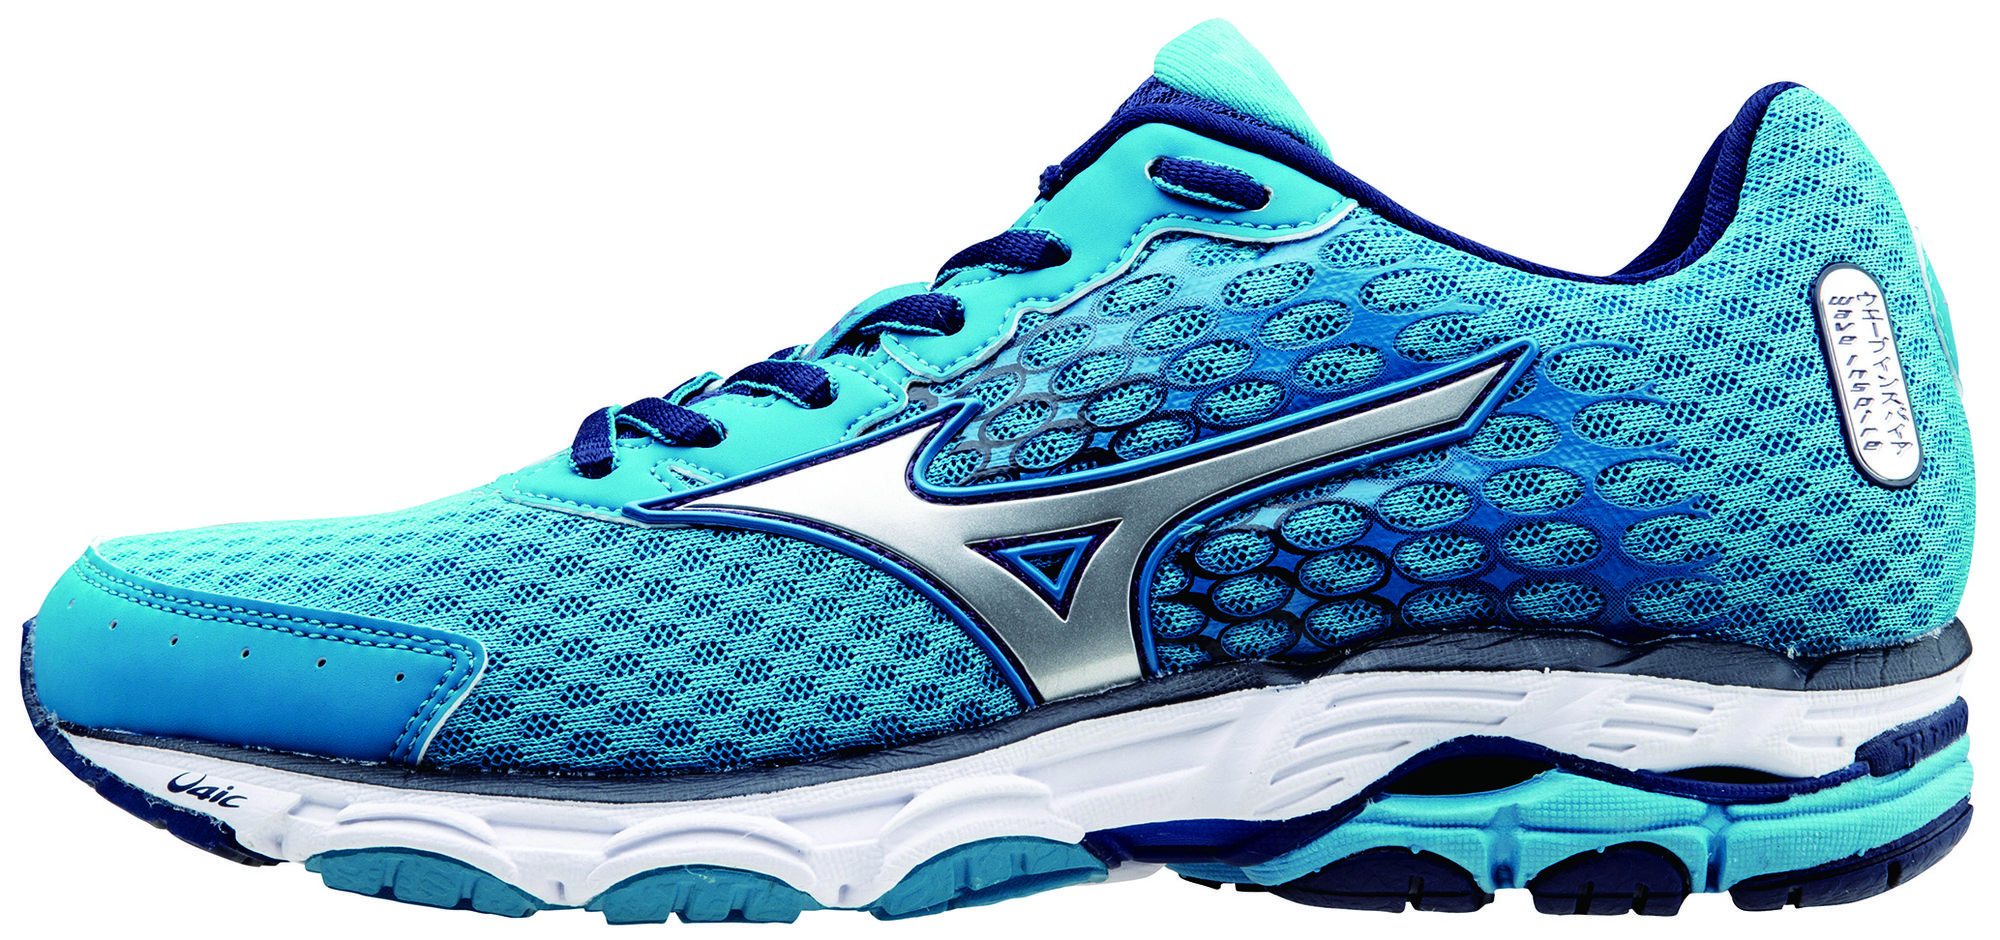 Mizuno Lady Wave Inspire 11 in Blau